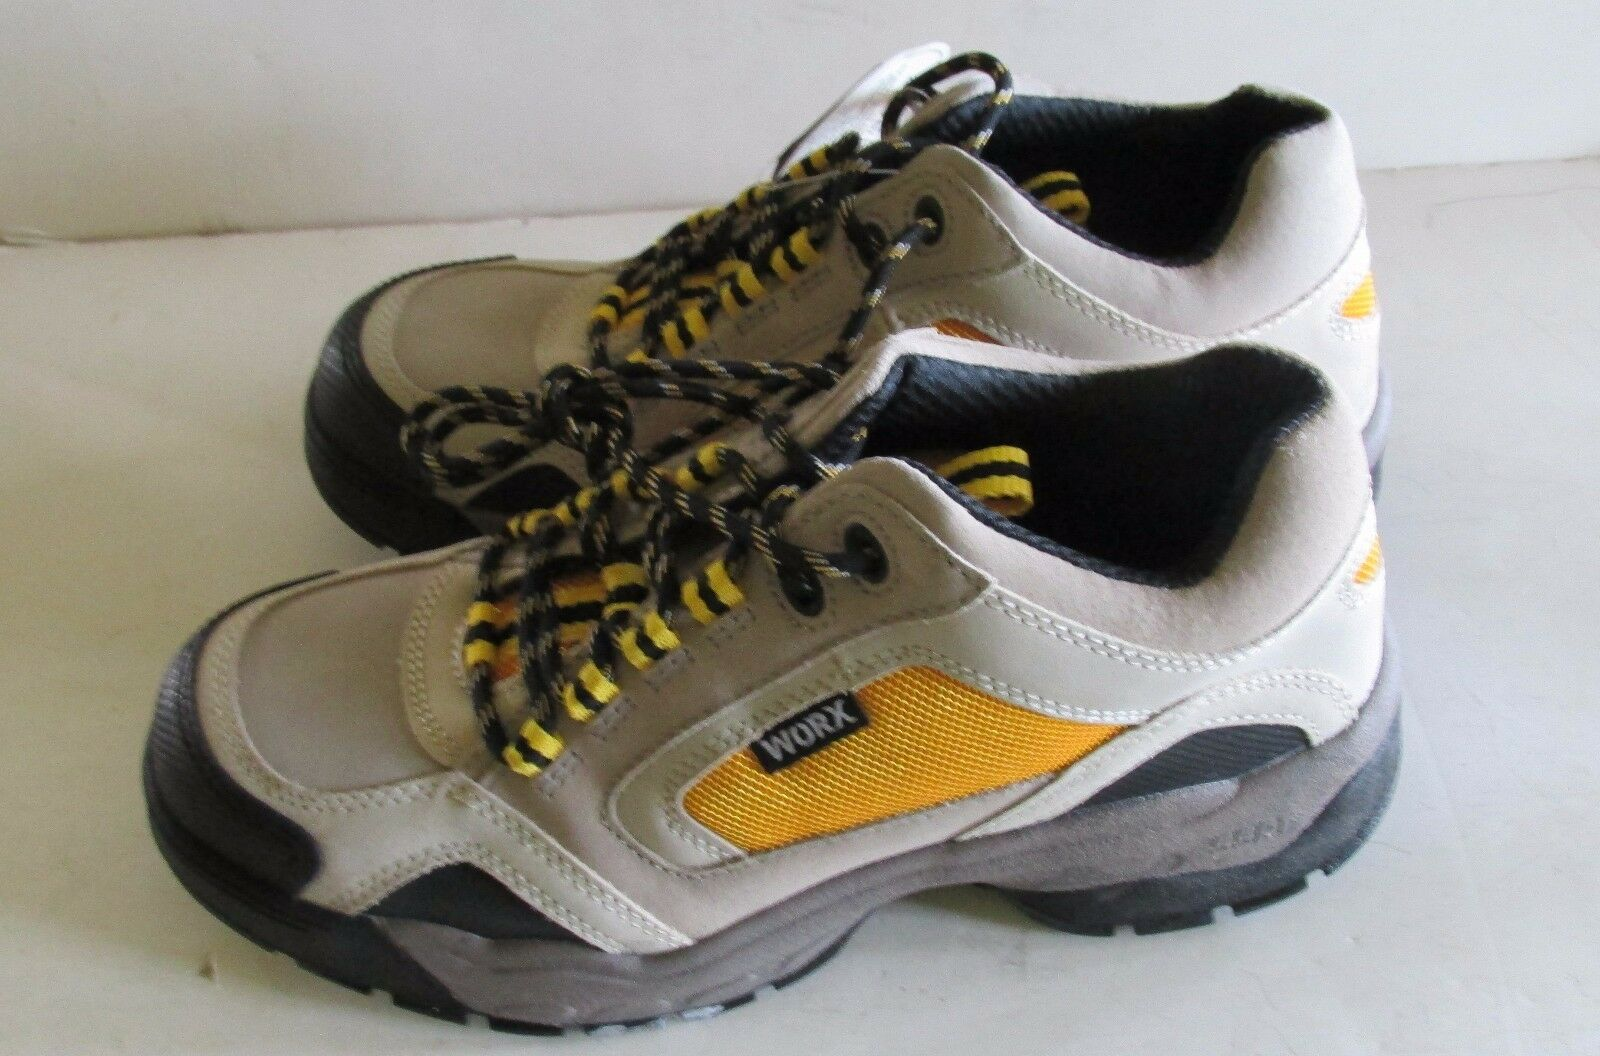 New With Box Women's Sz 7.5 M MEDIUM   WORX Oxfords Sneakers Gray and Yellow